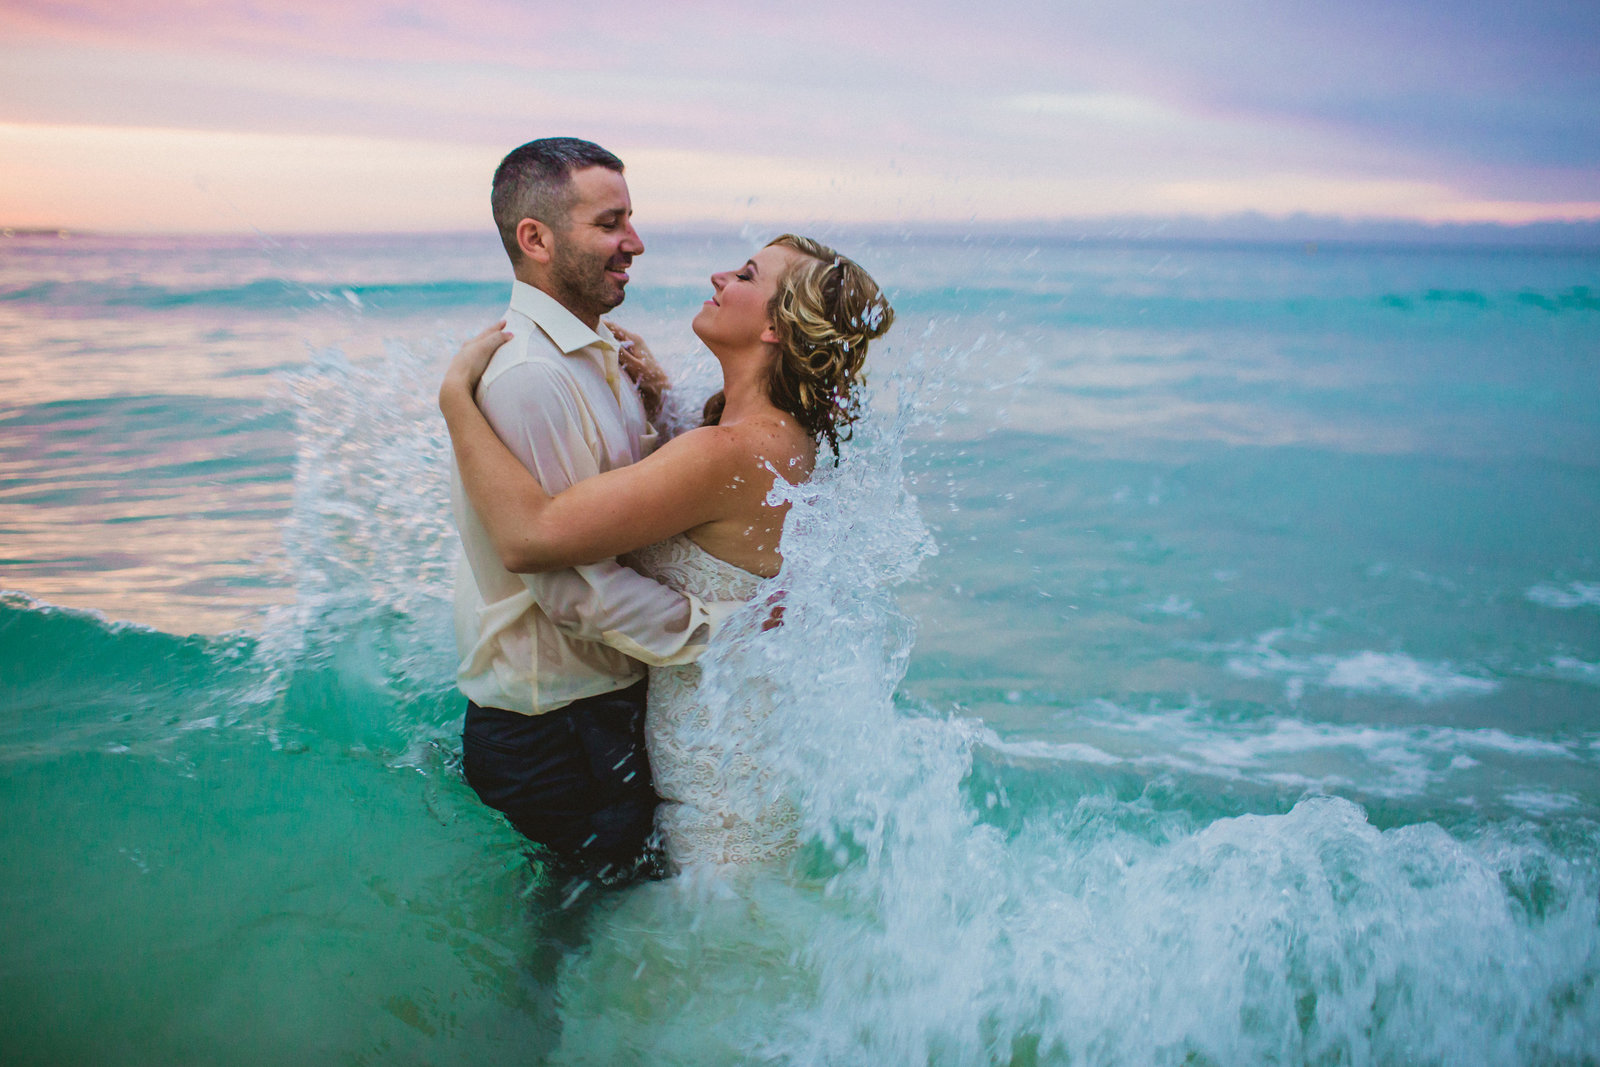 punta_cana_canada_intimate_wedding_dress_photographer_katya_nova_098